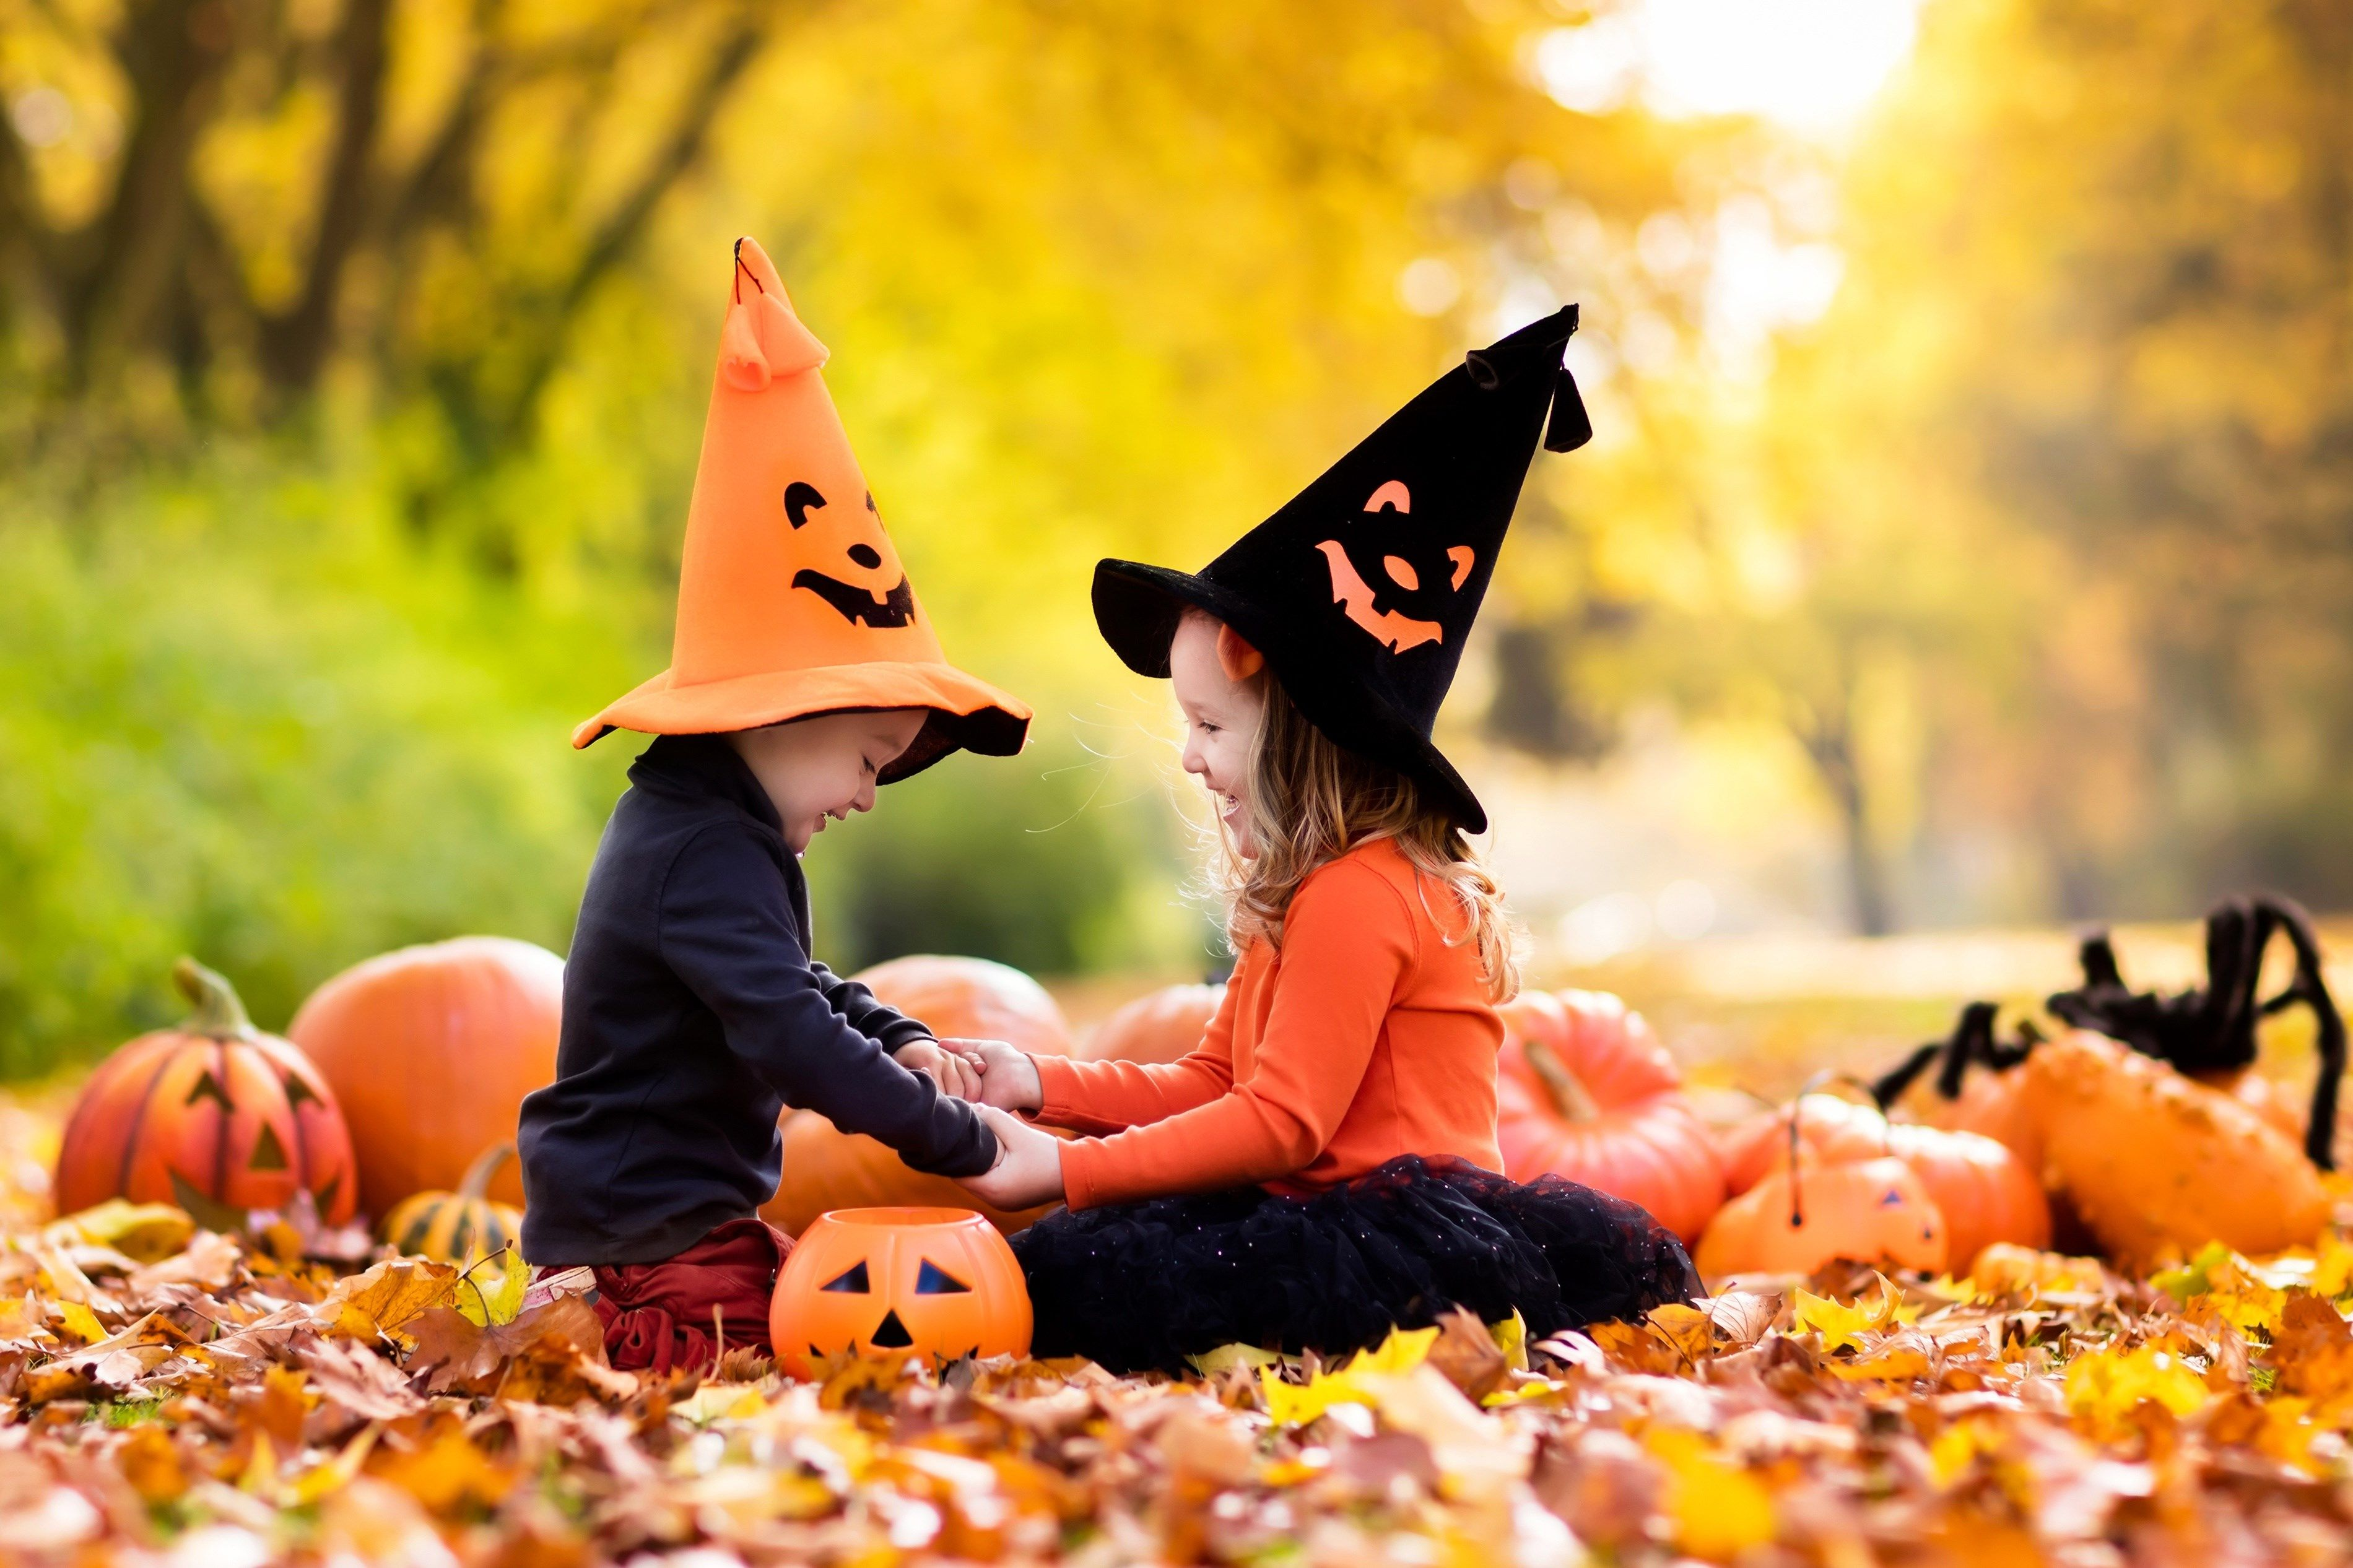 3800x2533 Free Download Halloween Halloween Wallpaper Halloween Kids Halloween Wallpaper Backgrounds